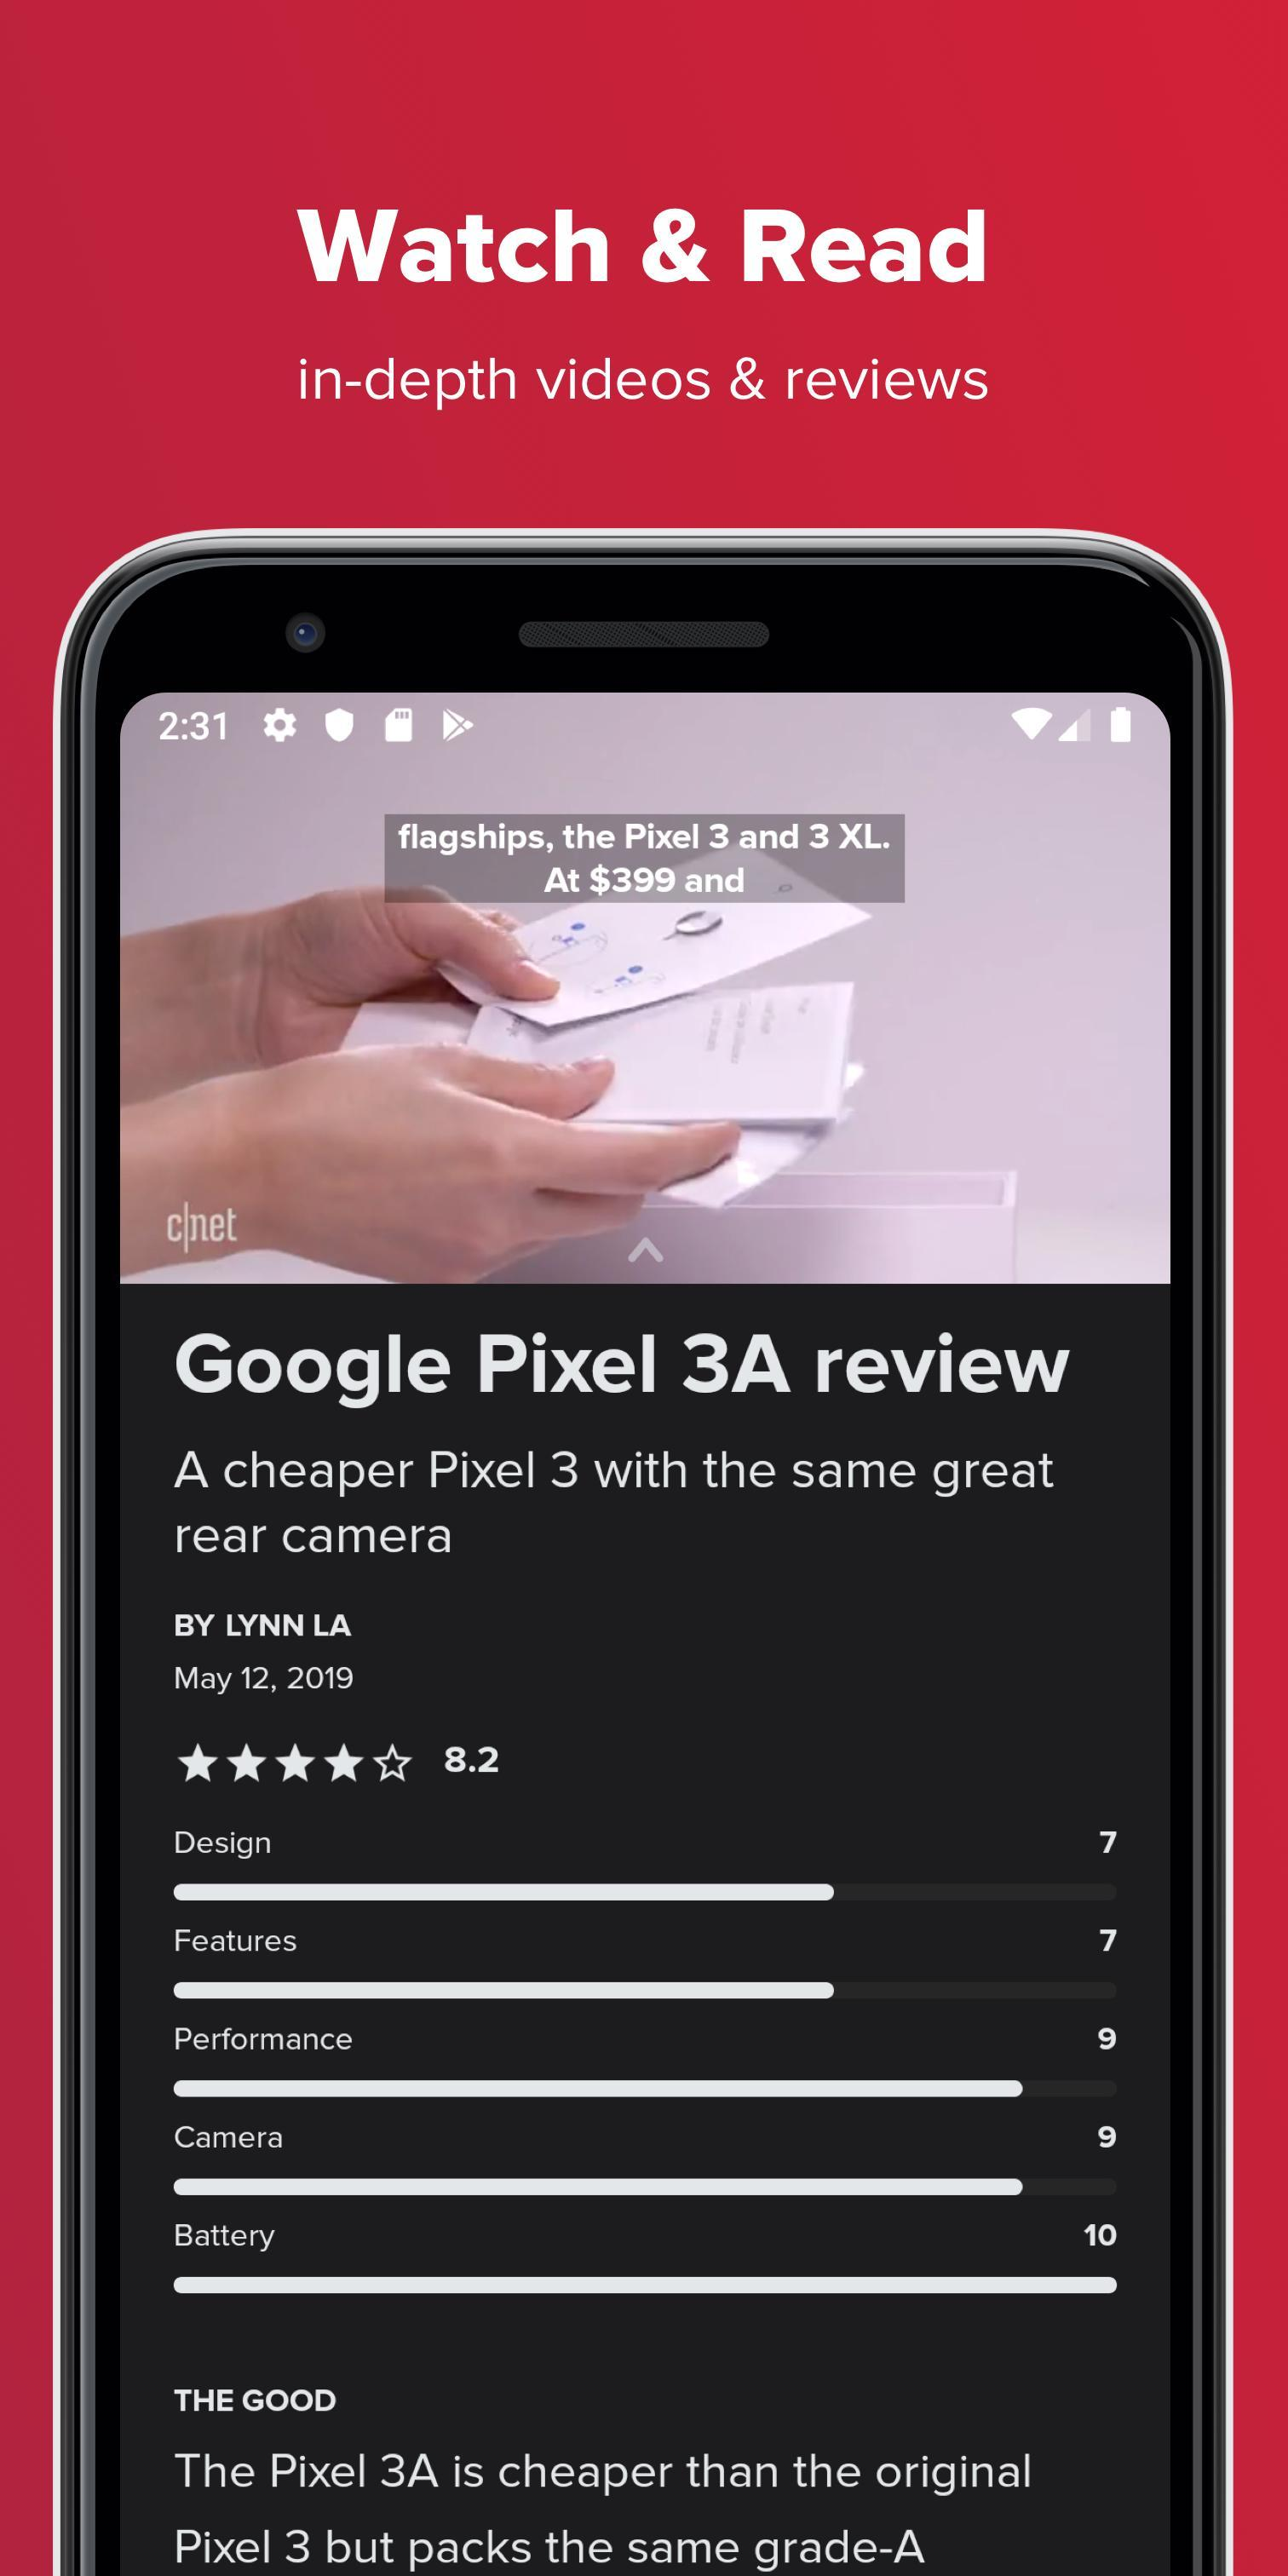 CNET Best Tech News, Reviews, Videos & Deals 4.5.3 Screenshot 5